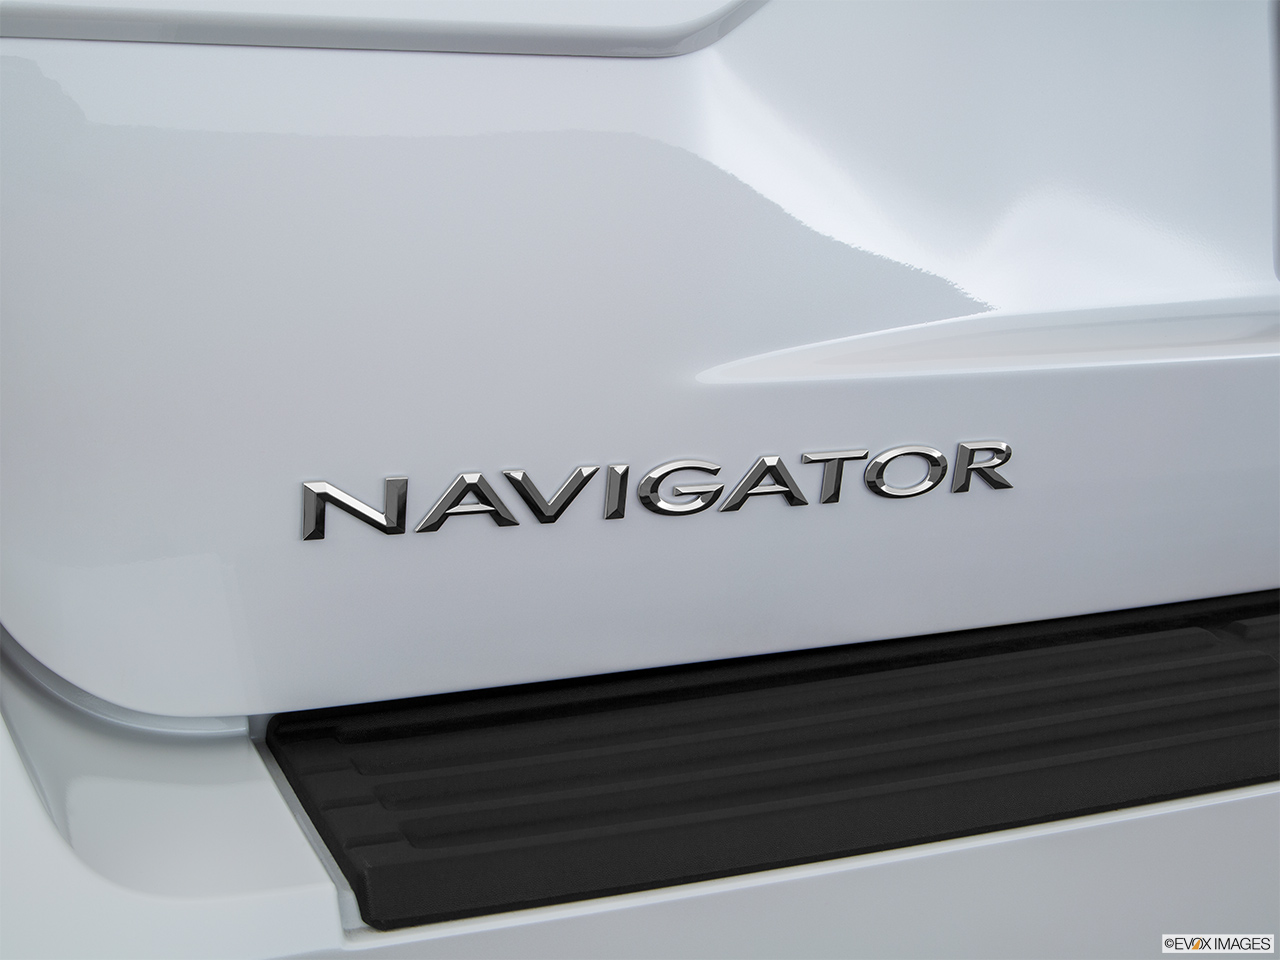 2016 Lincoln Navigator Reserve Rear model badge/emblem